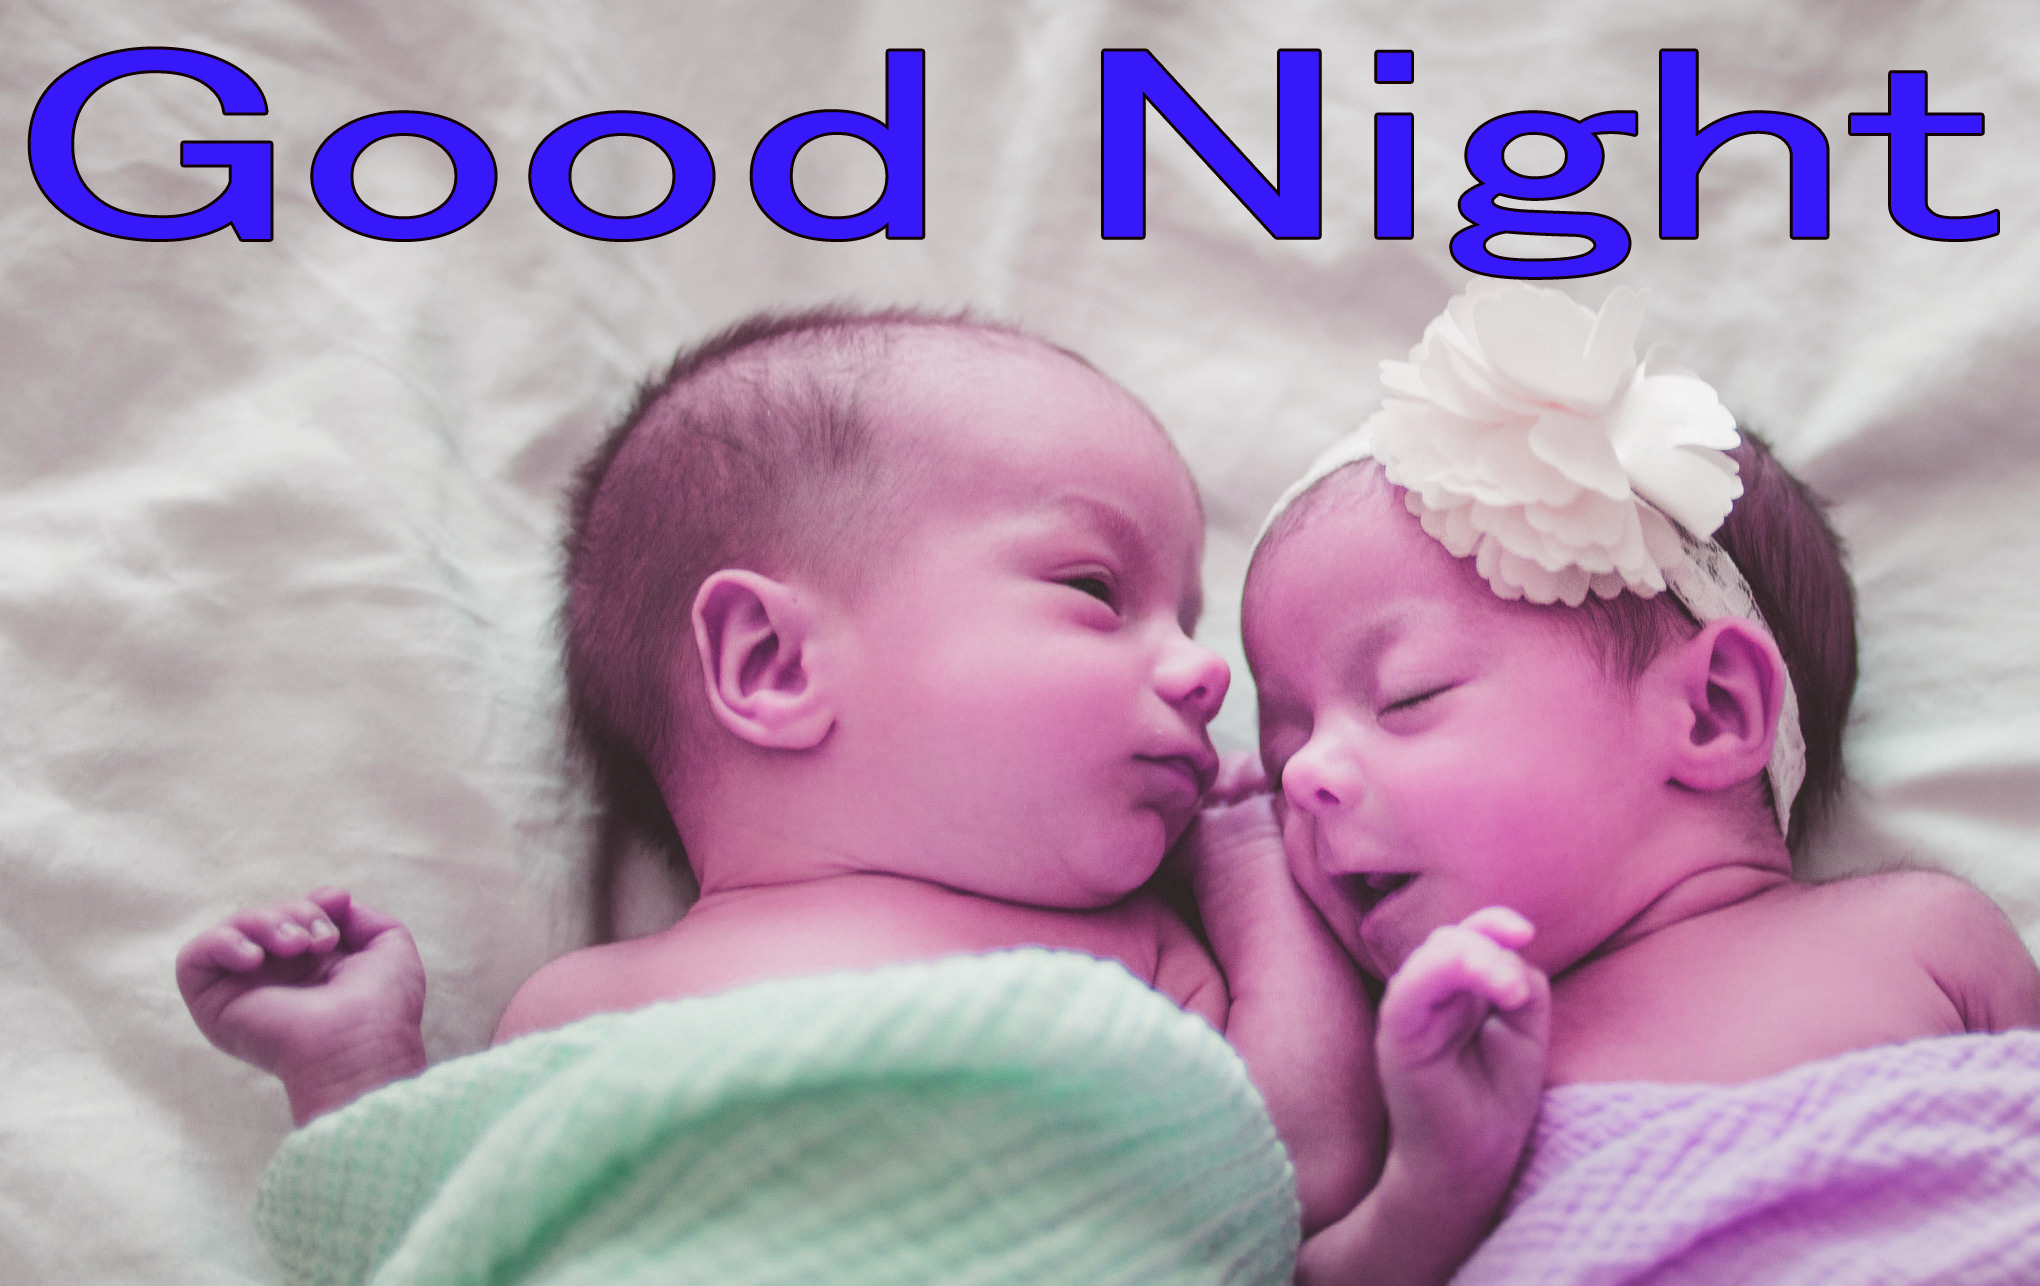 GOOD NIGHT IMAGES WITH CUTE BABY BOYS & GIRLS WALLPAPER PICTURES HD